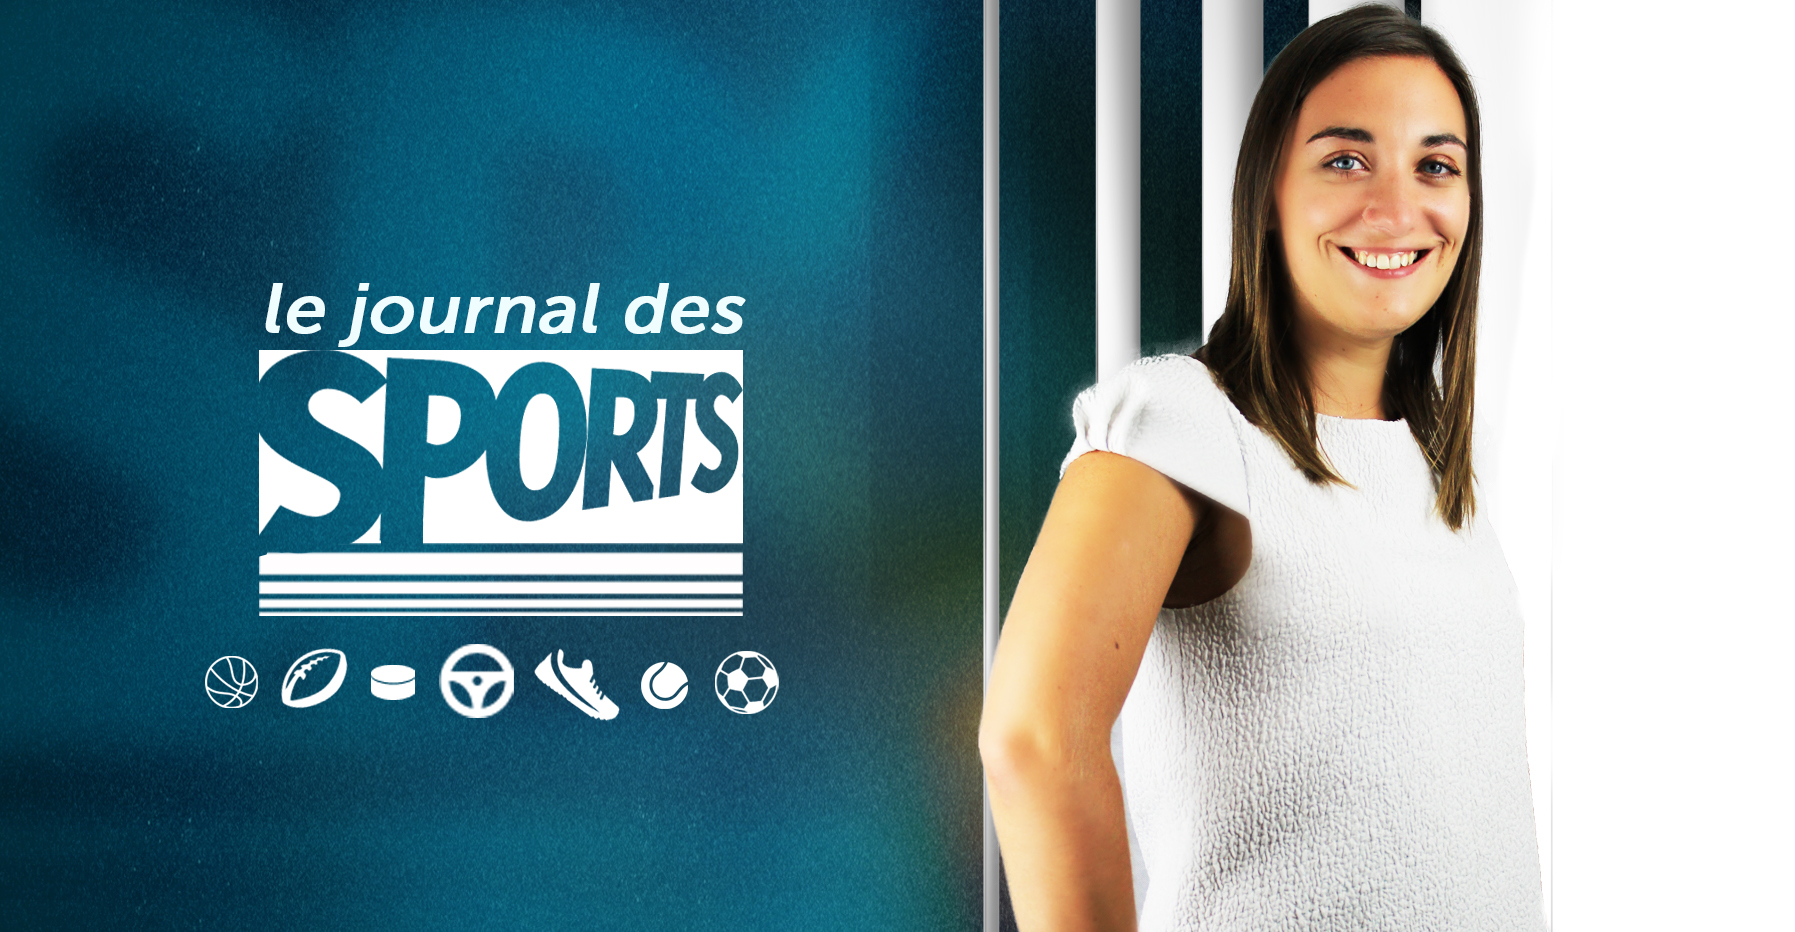 Journal des sports-2017-Slide